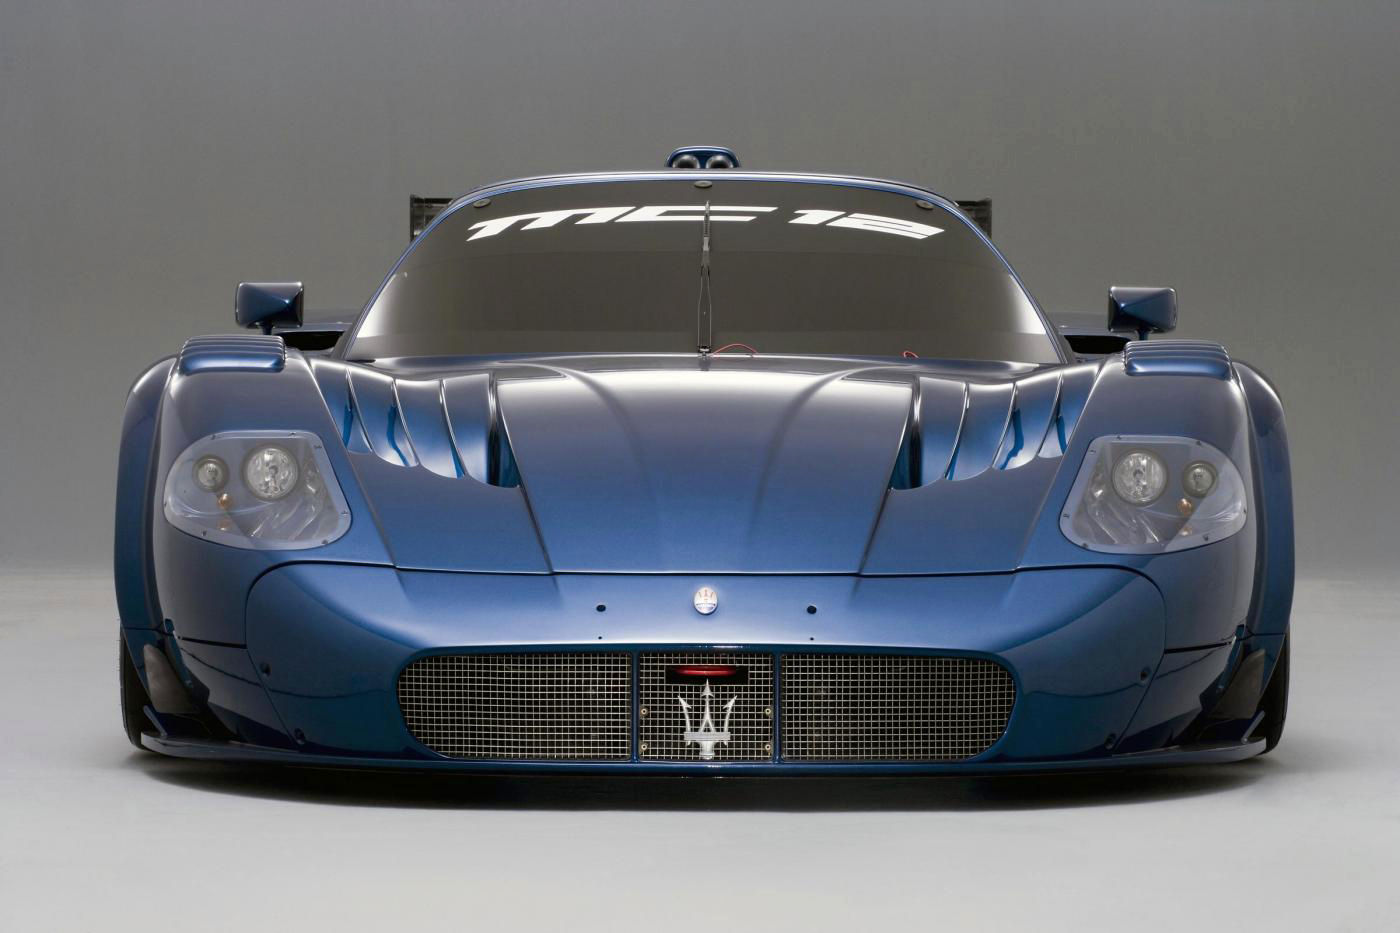 2006 Maserati MC12 Versione Corse - front view of the track car